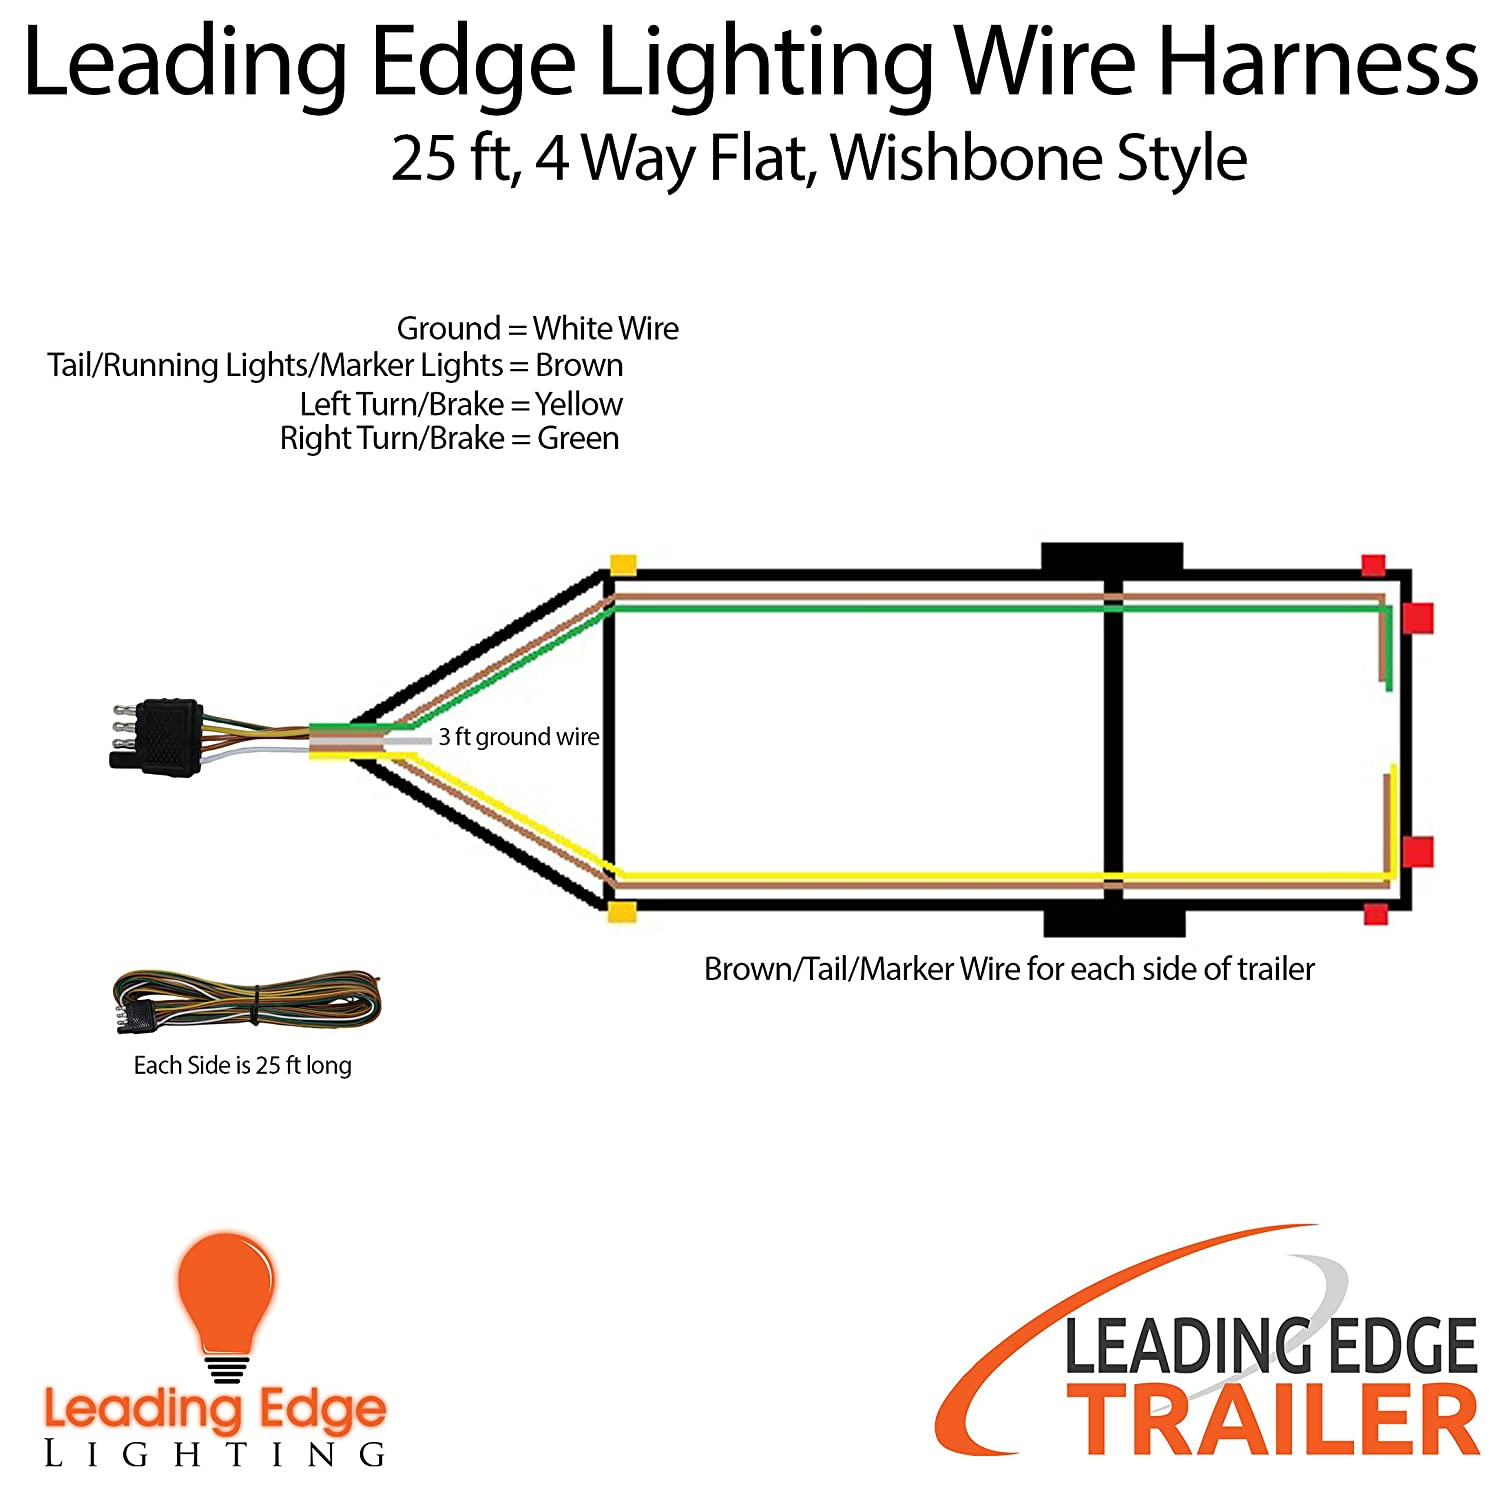 Amazon wishbone style trailer wiring harness with 4 flat amazon wishbone style trailer wiring harness with 4 flat connector 25 ft long with 3 ft ground wire sports outdoors asfbconference2016